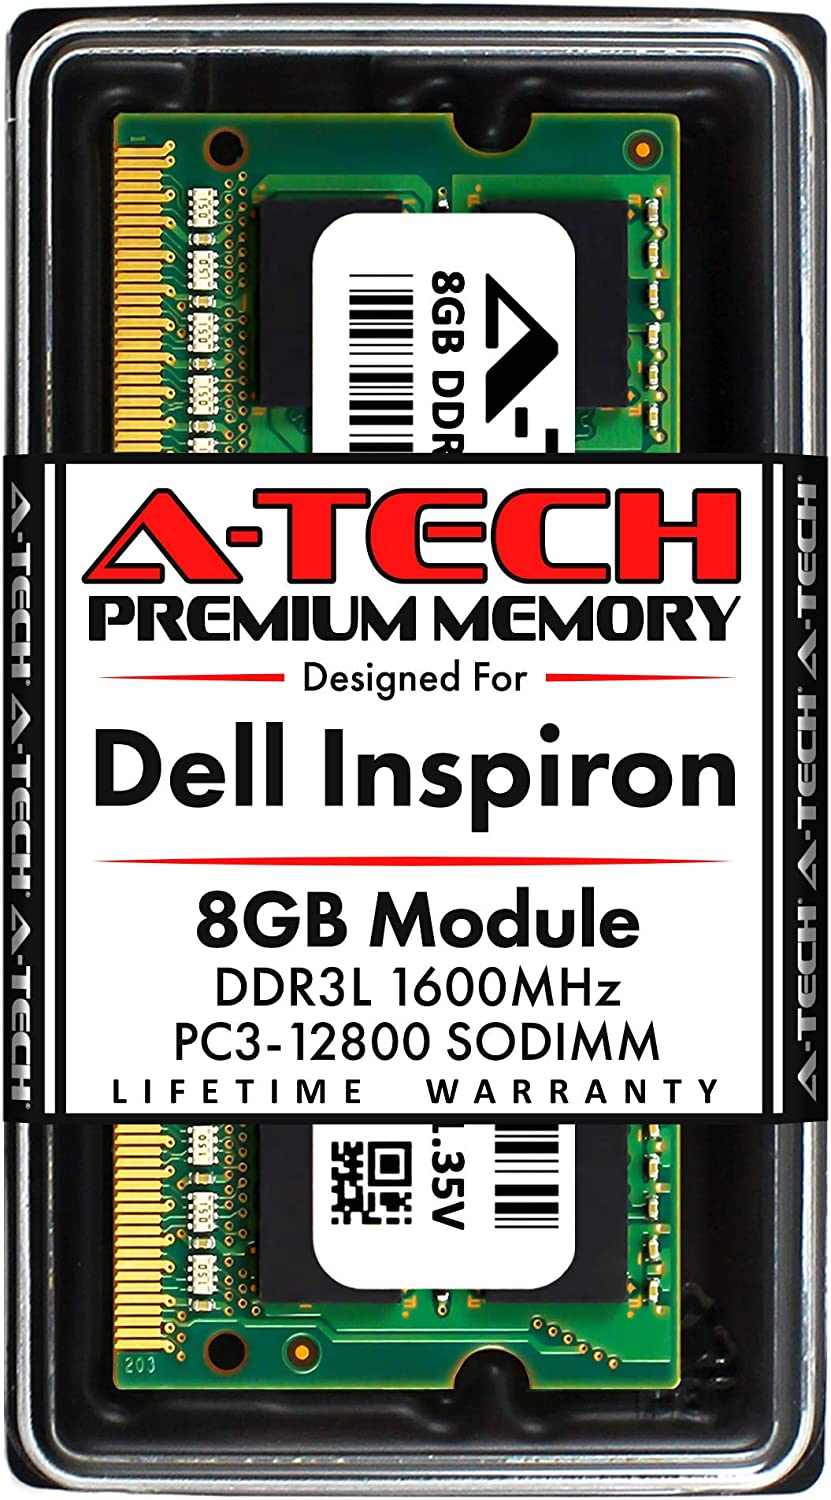 A-Tech 8GB RAM for Dell Inspiron 22 3263, 3265 All-in-One | DDR3/DDR3L 1600MHz SODIMM PC3L-12800 204-Pin Non-ECC Unbuffered Memory Upgrade Module